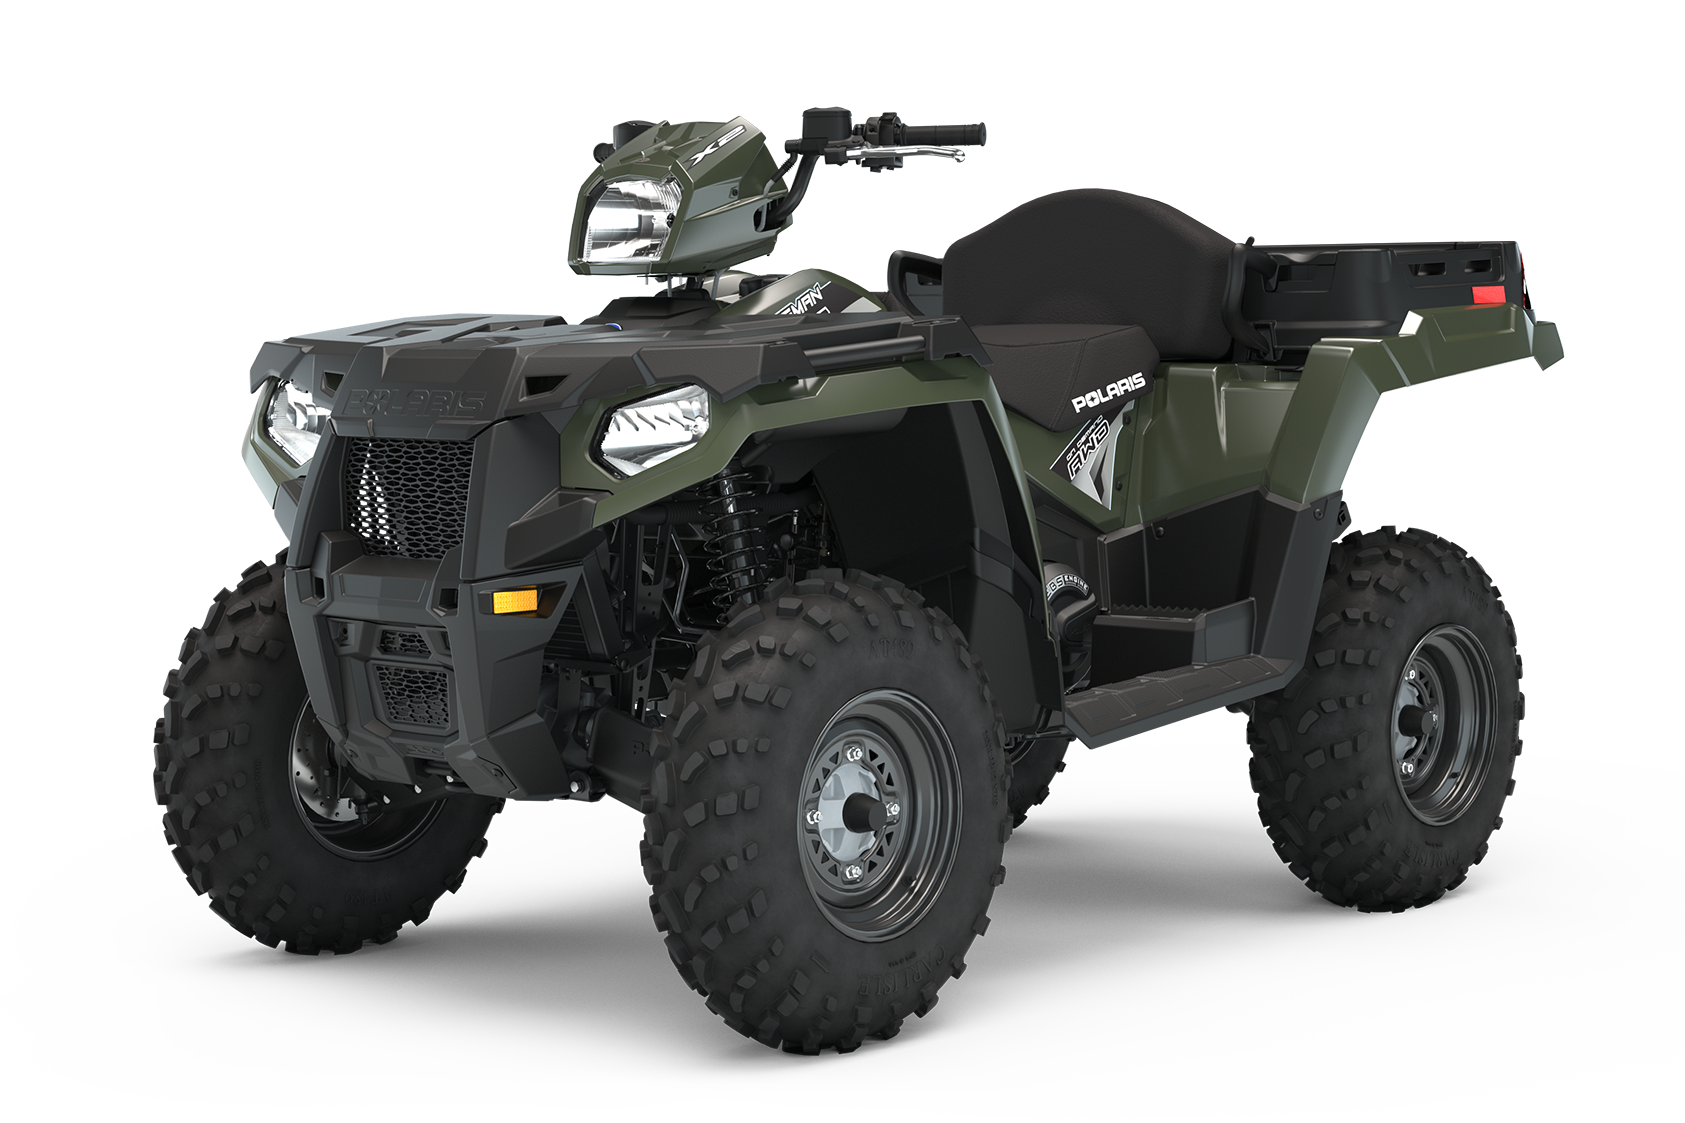 ATV SPORTSMAN X2 570 EPS 2021